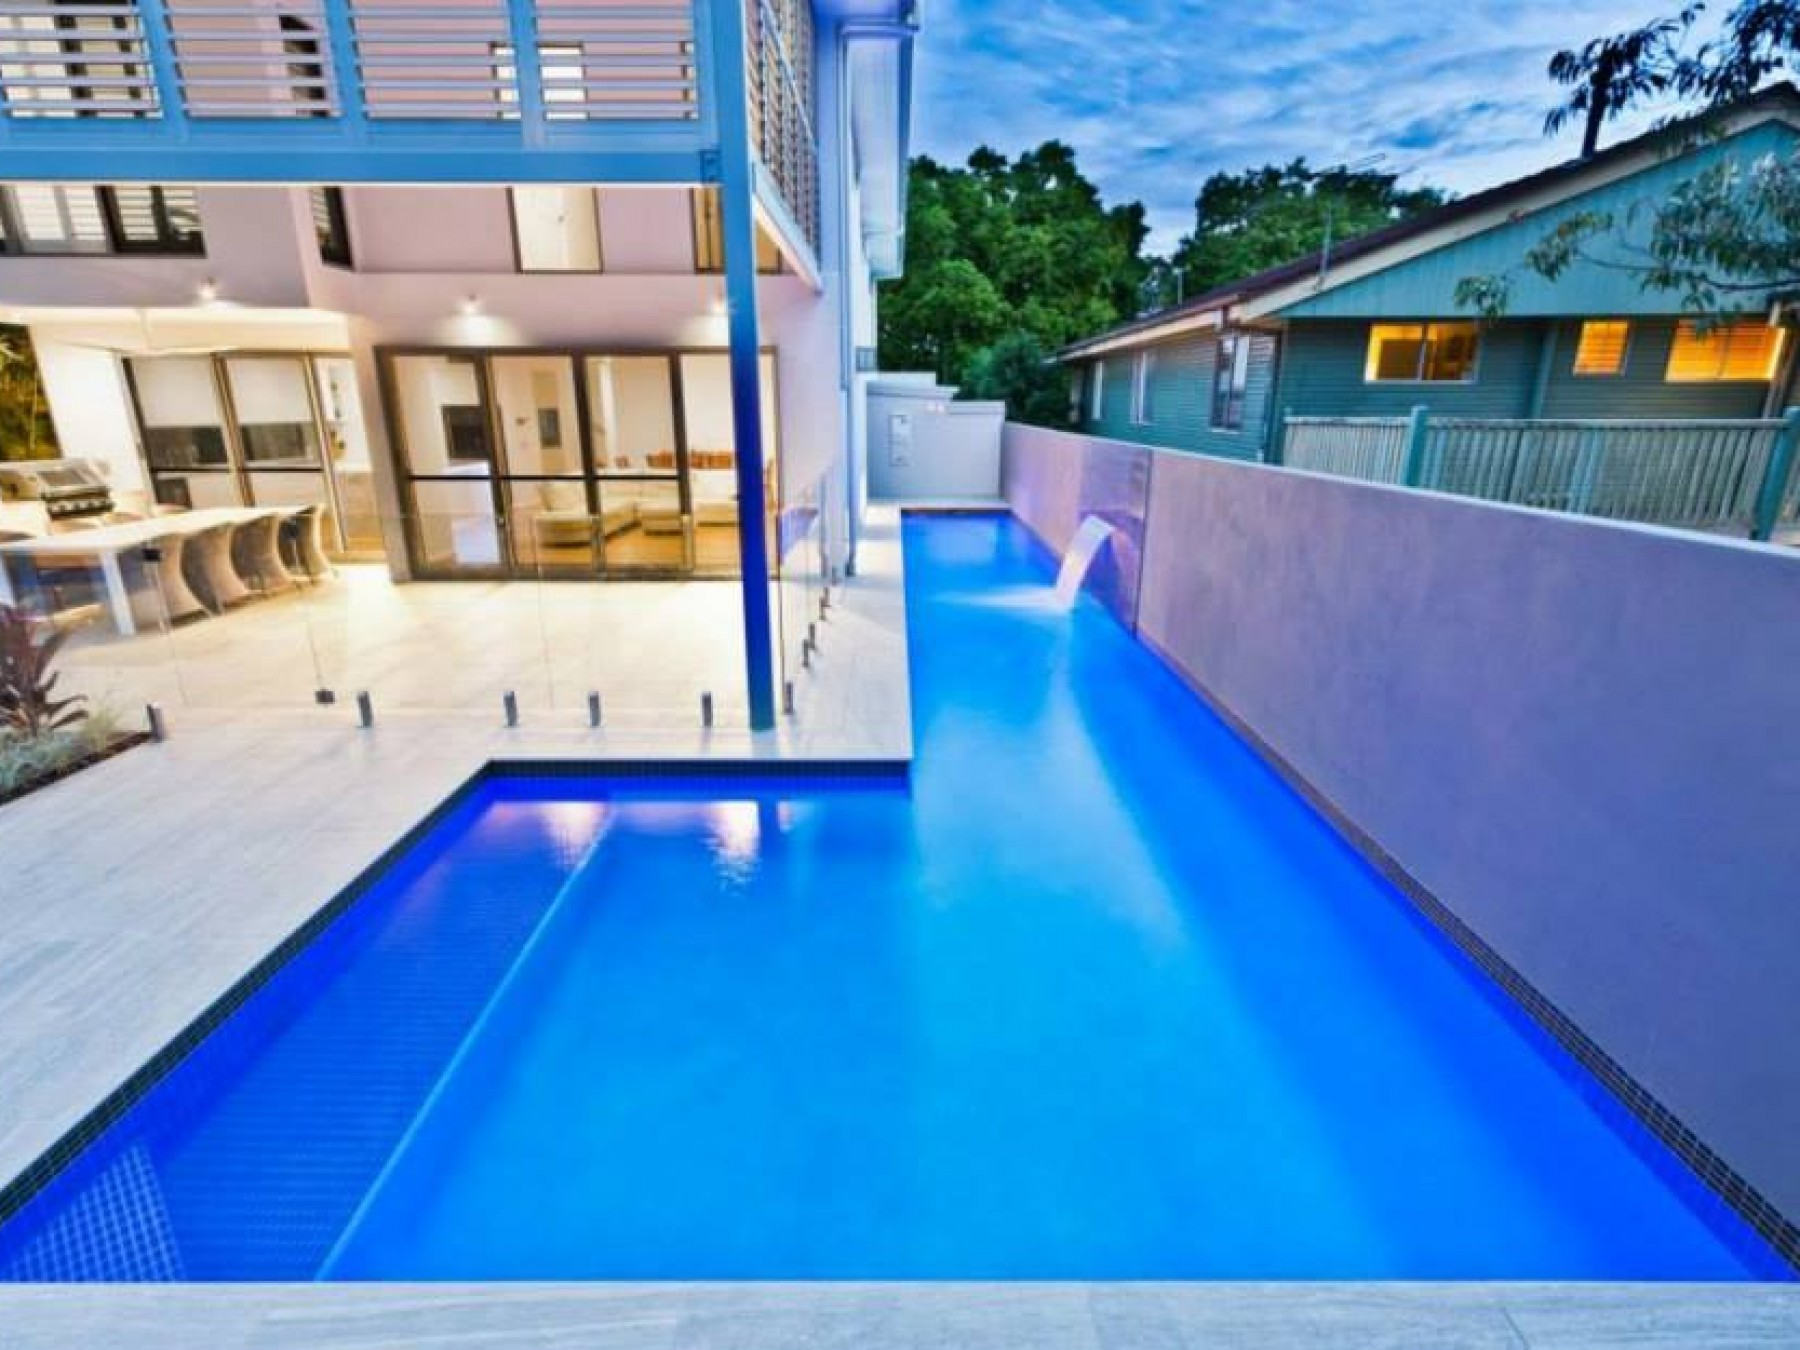 Selling or Leasing a pool in Wacol